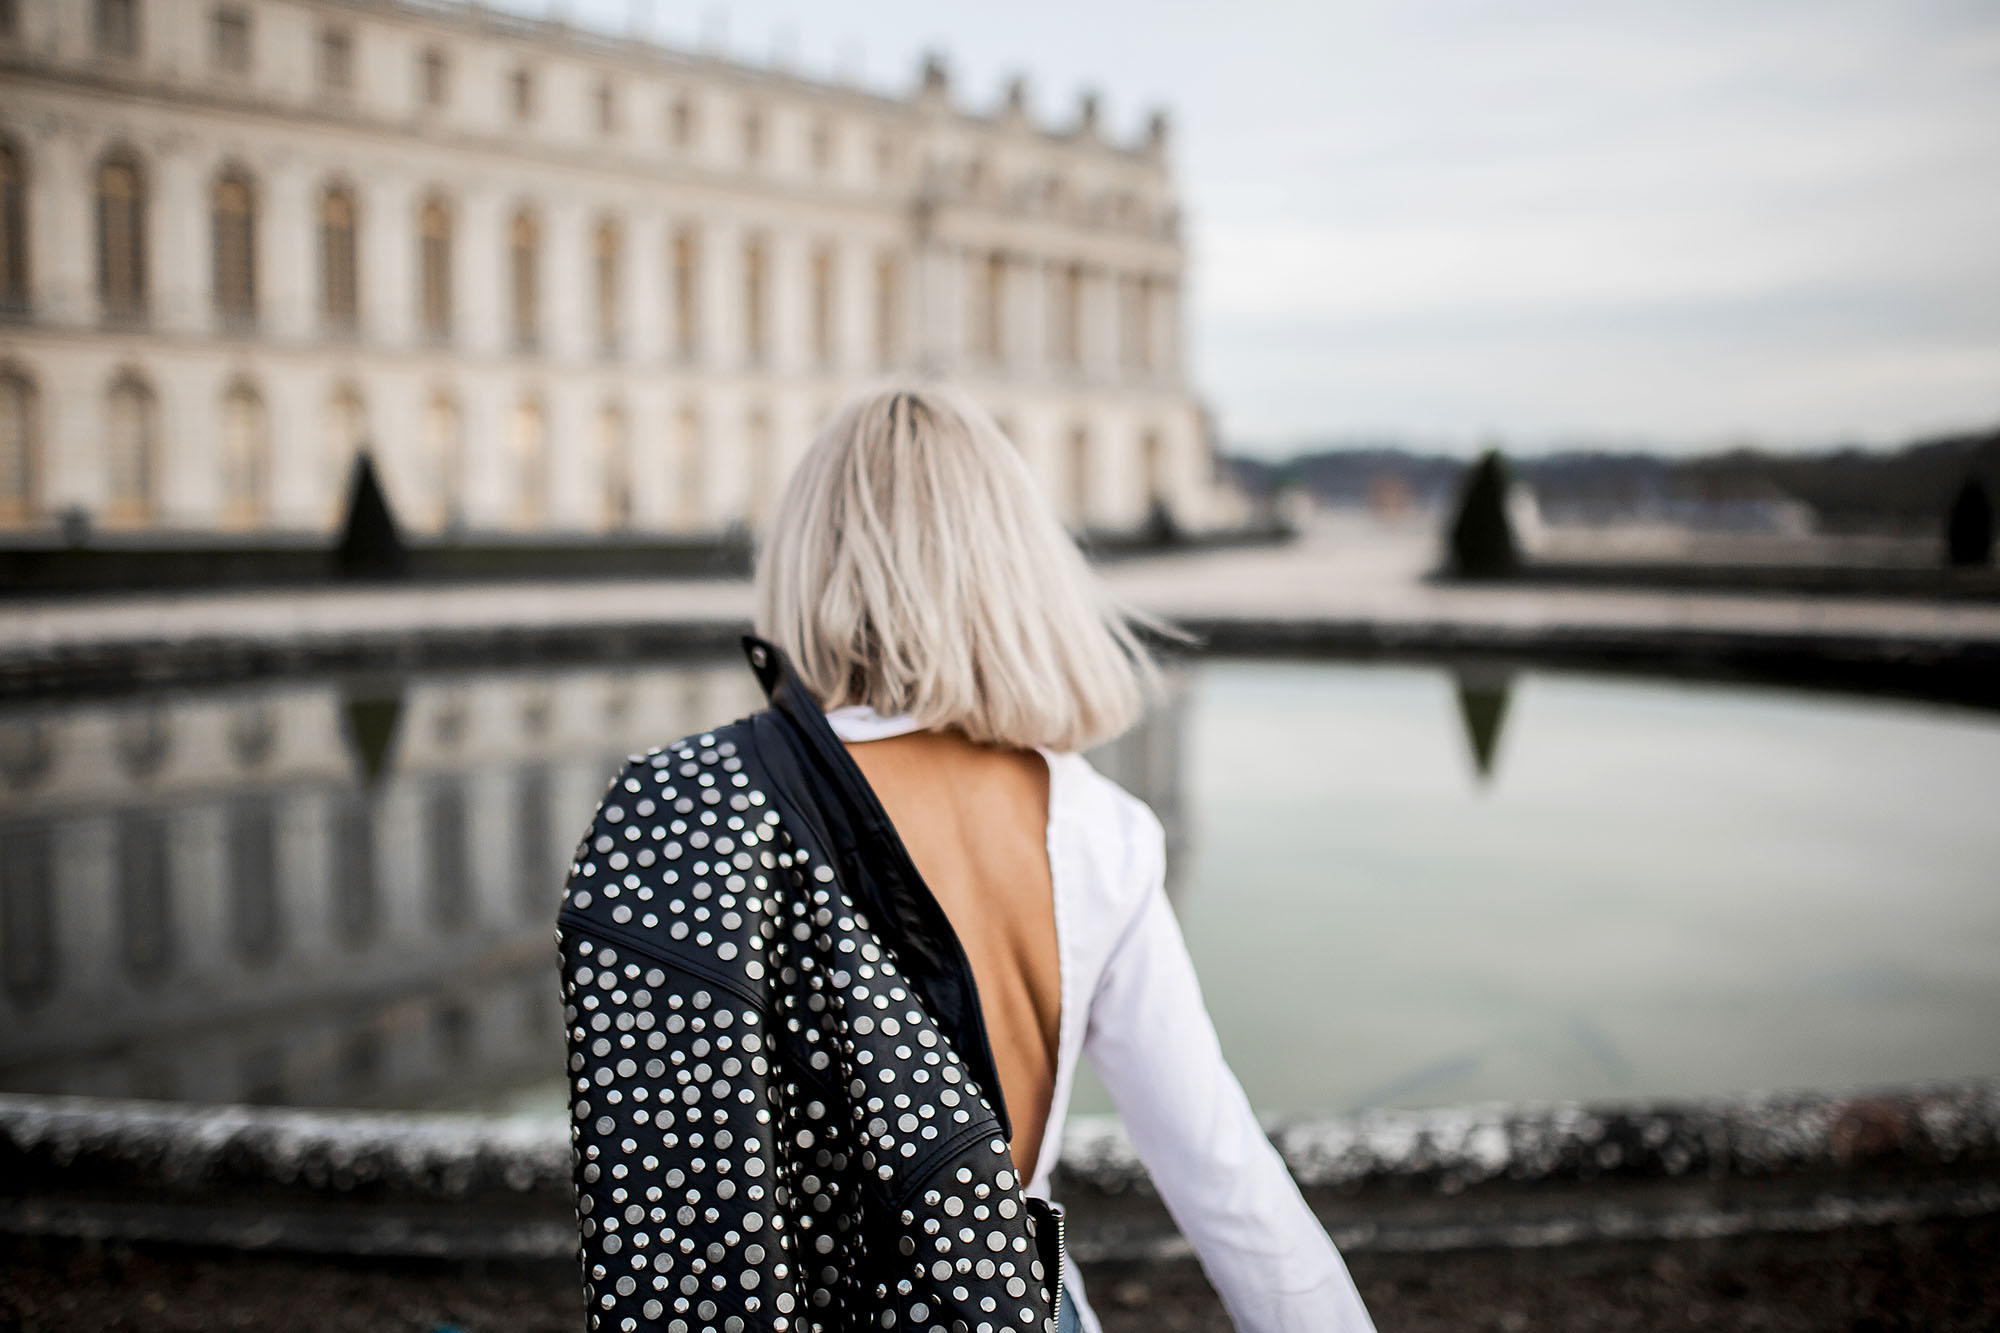 Rock n Roll Decadence at the Palace of Versailles